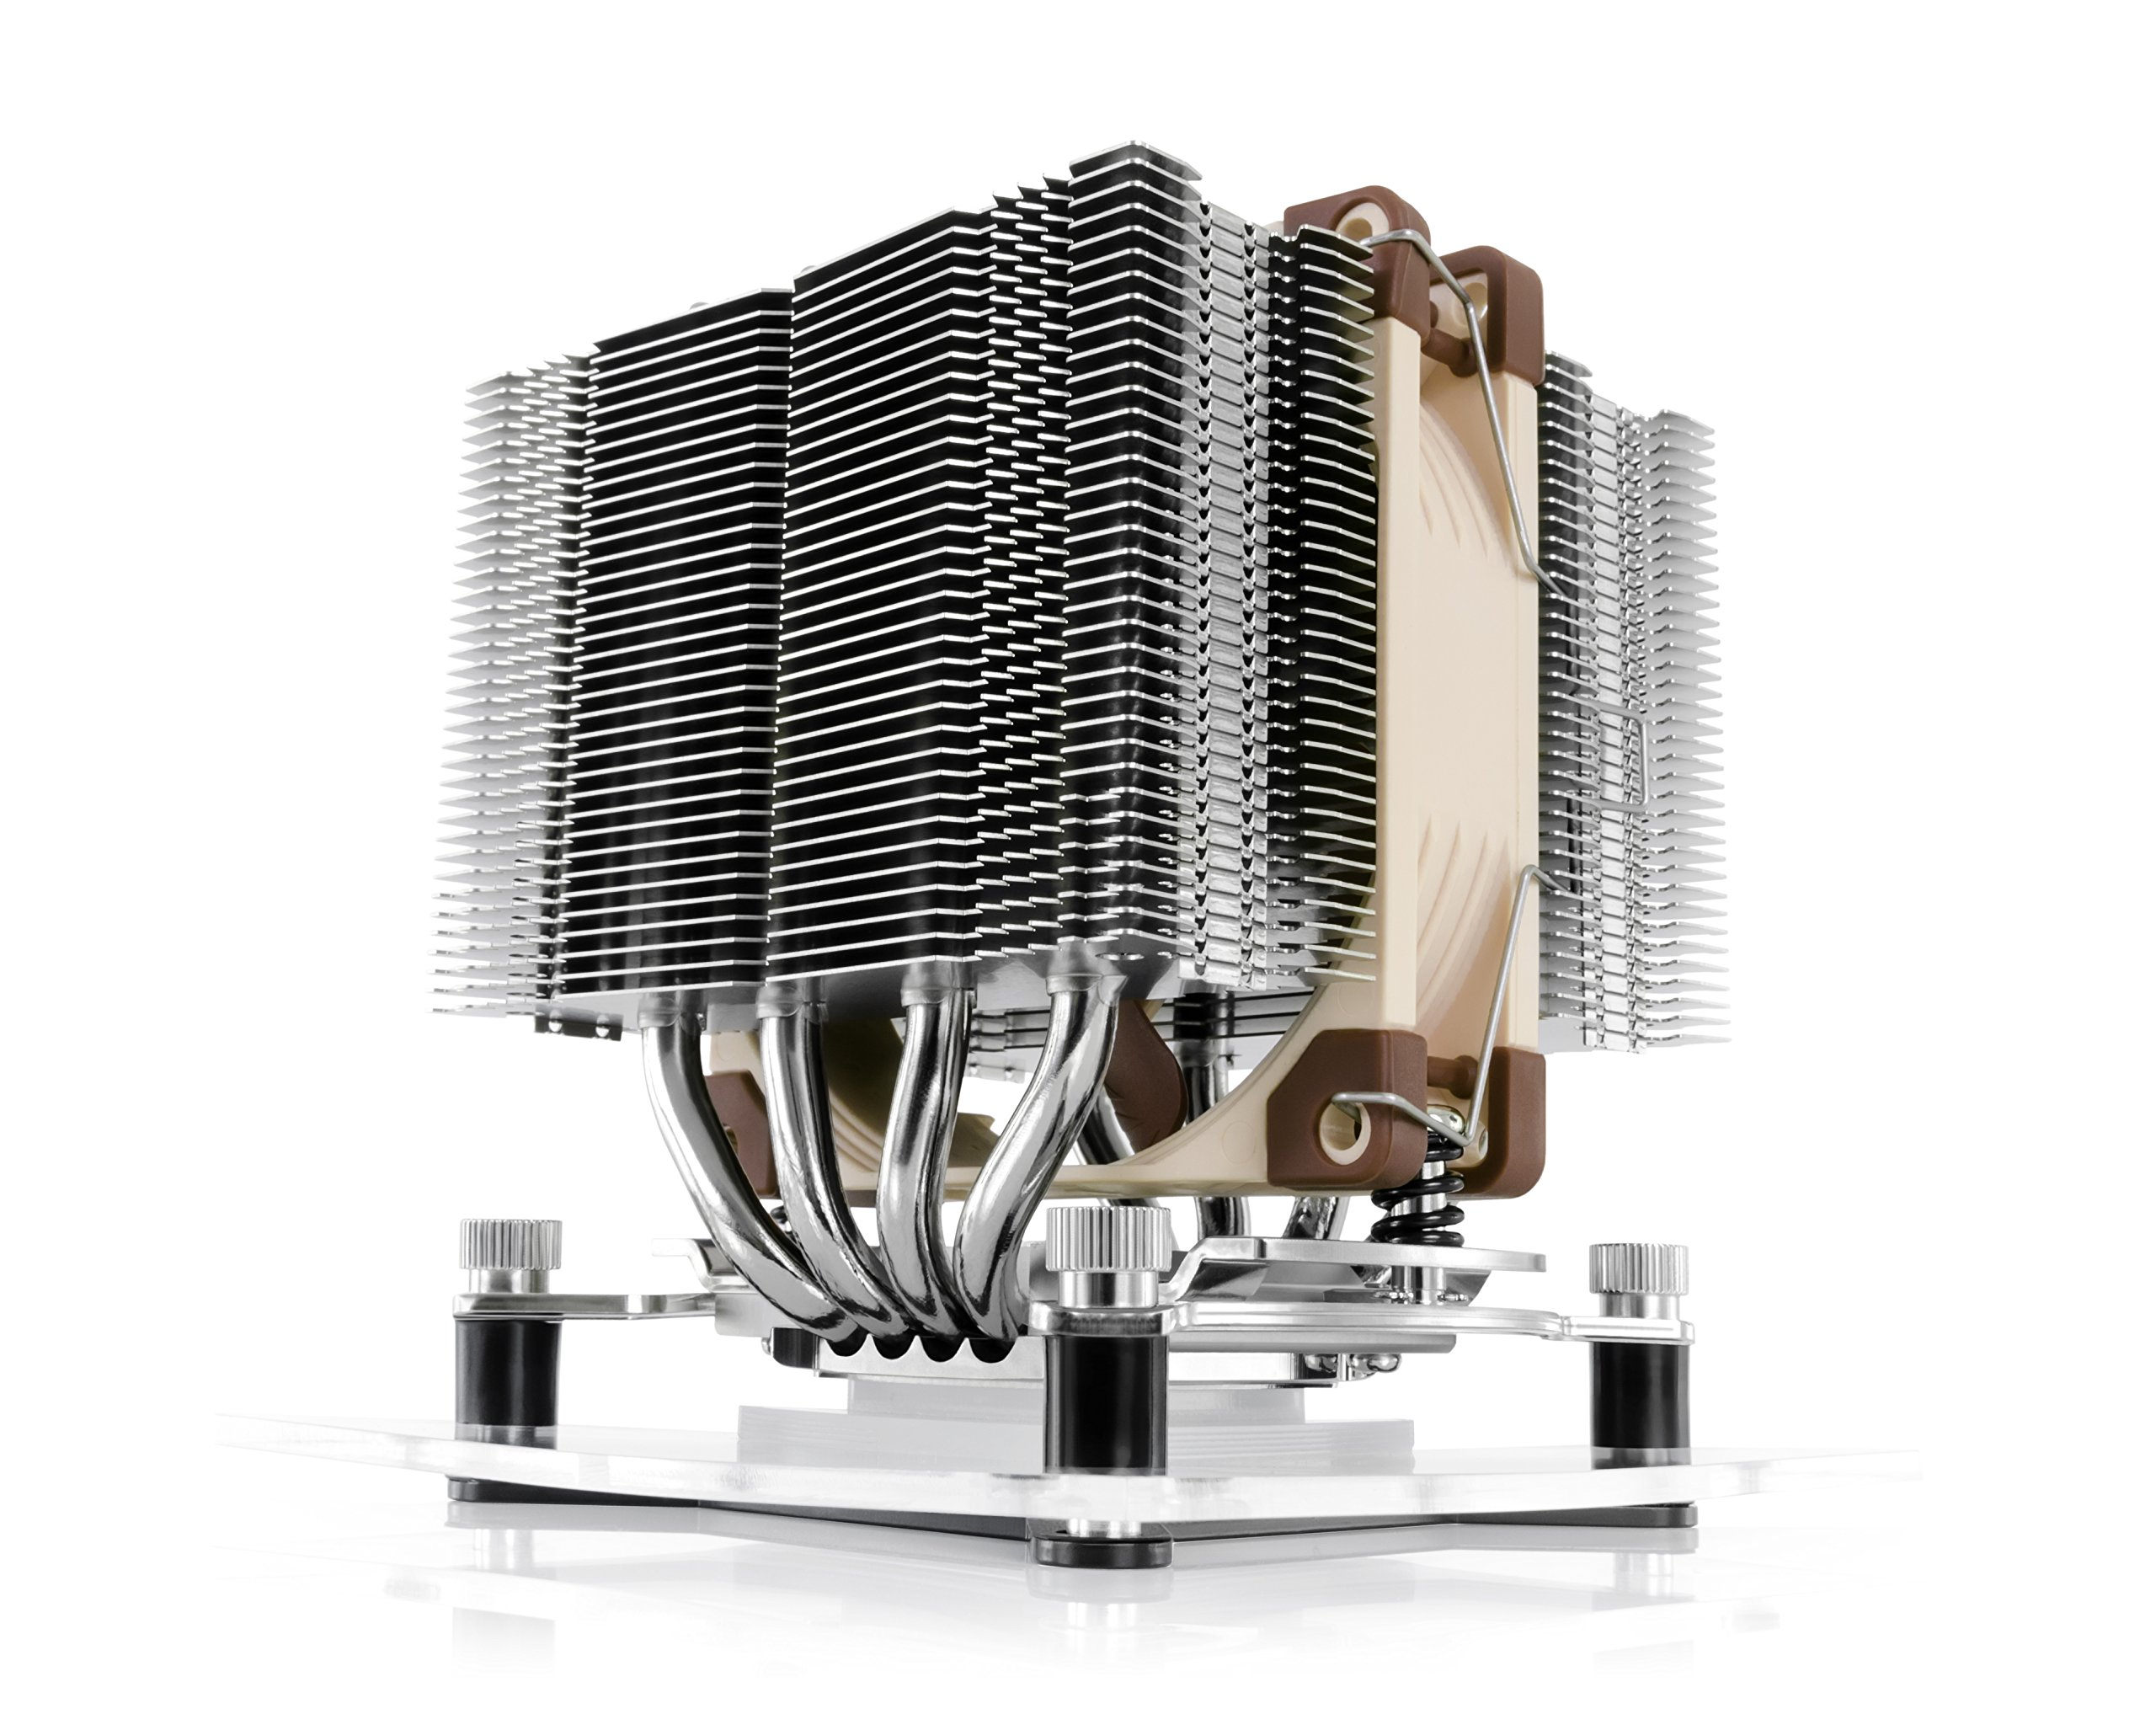 Noctua NH-D9L, Premium CPU Cooler with NF-A9 92mm Fan (Brown) by NOCTUA